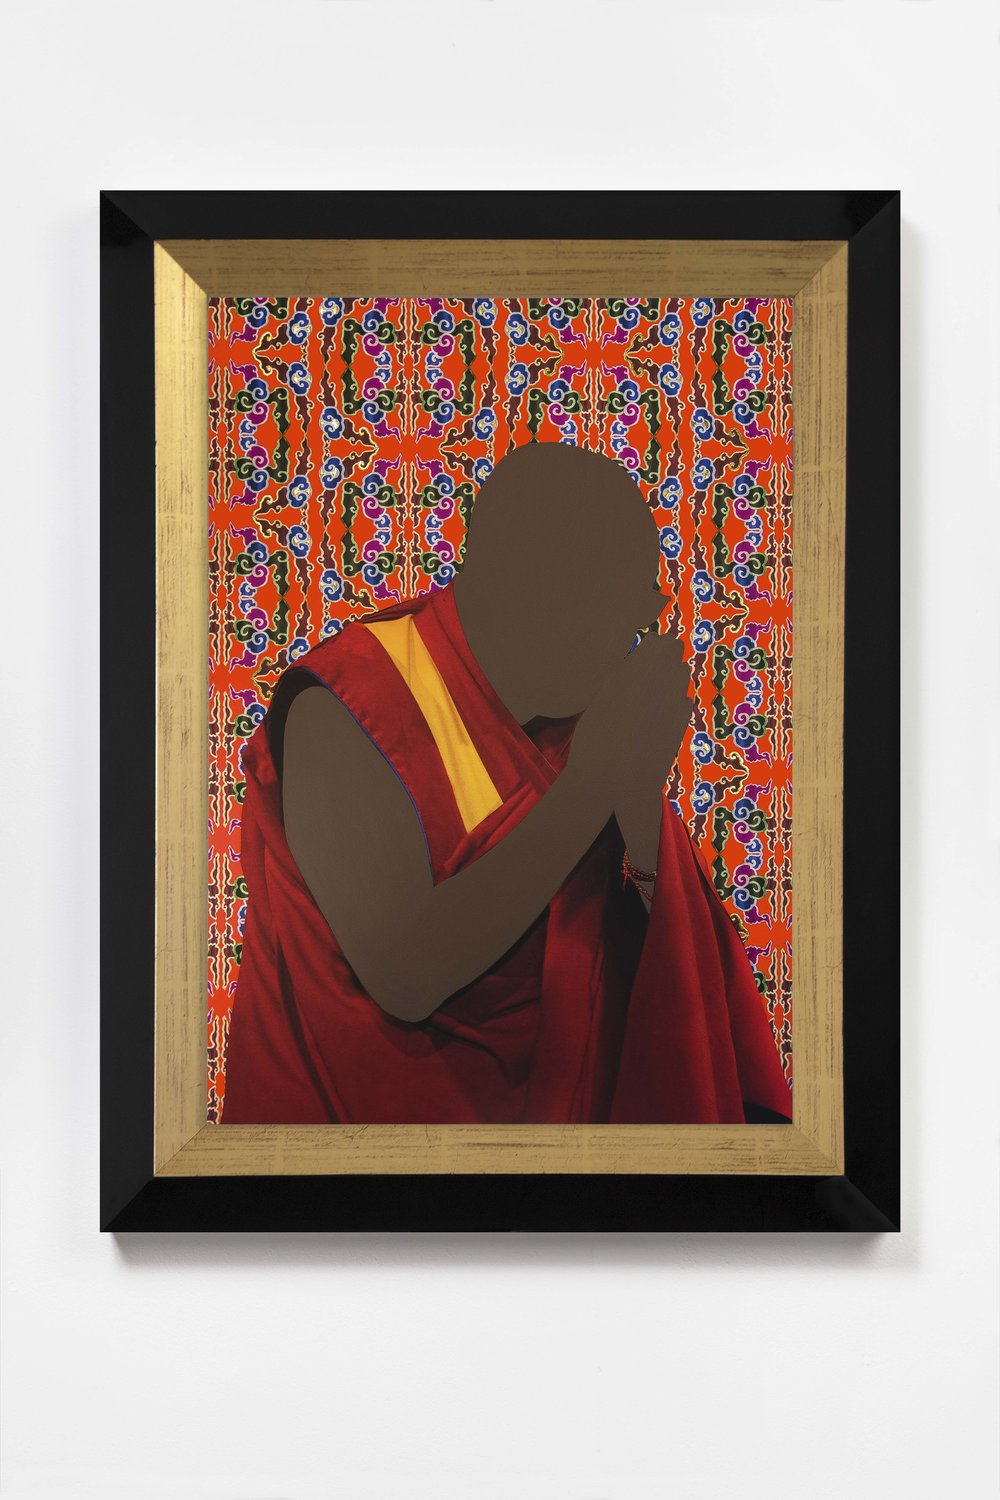 Encounter, Saffron  2018 © Nicola Green  Painting, on giclée with hand applied 24k gold leaf, 308gsm Hahnemuhle   H52 x W40 cm   £5,900 including frame and VAT   H64 x W47 cm   £8,500 including frame and VAT